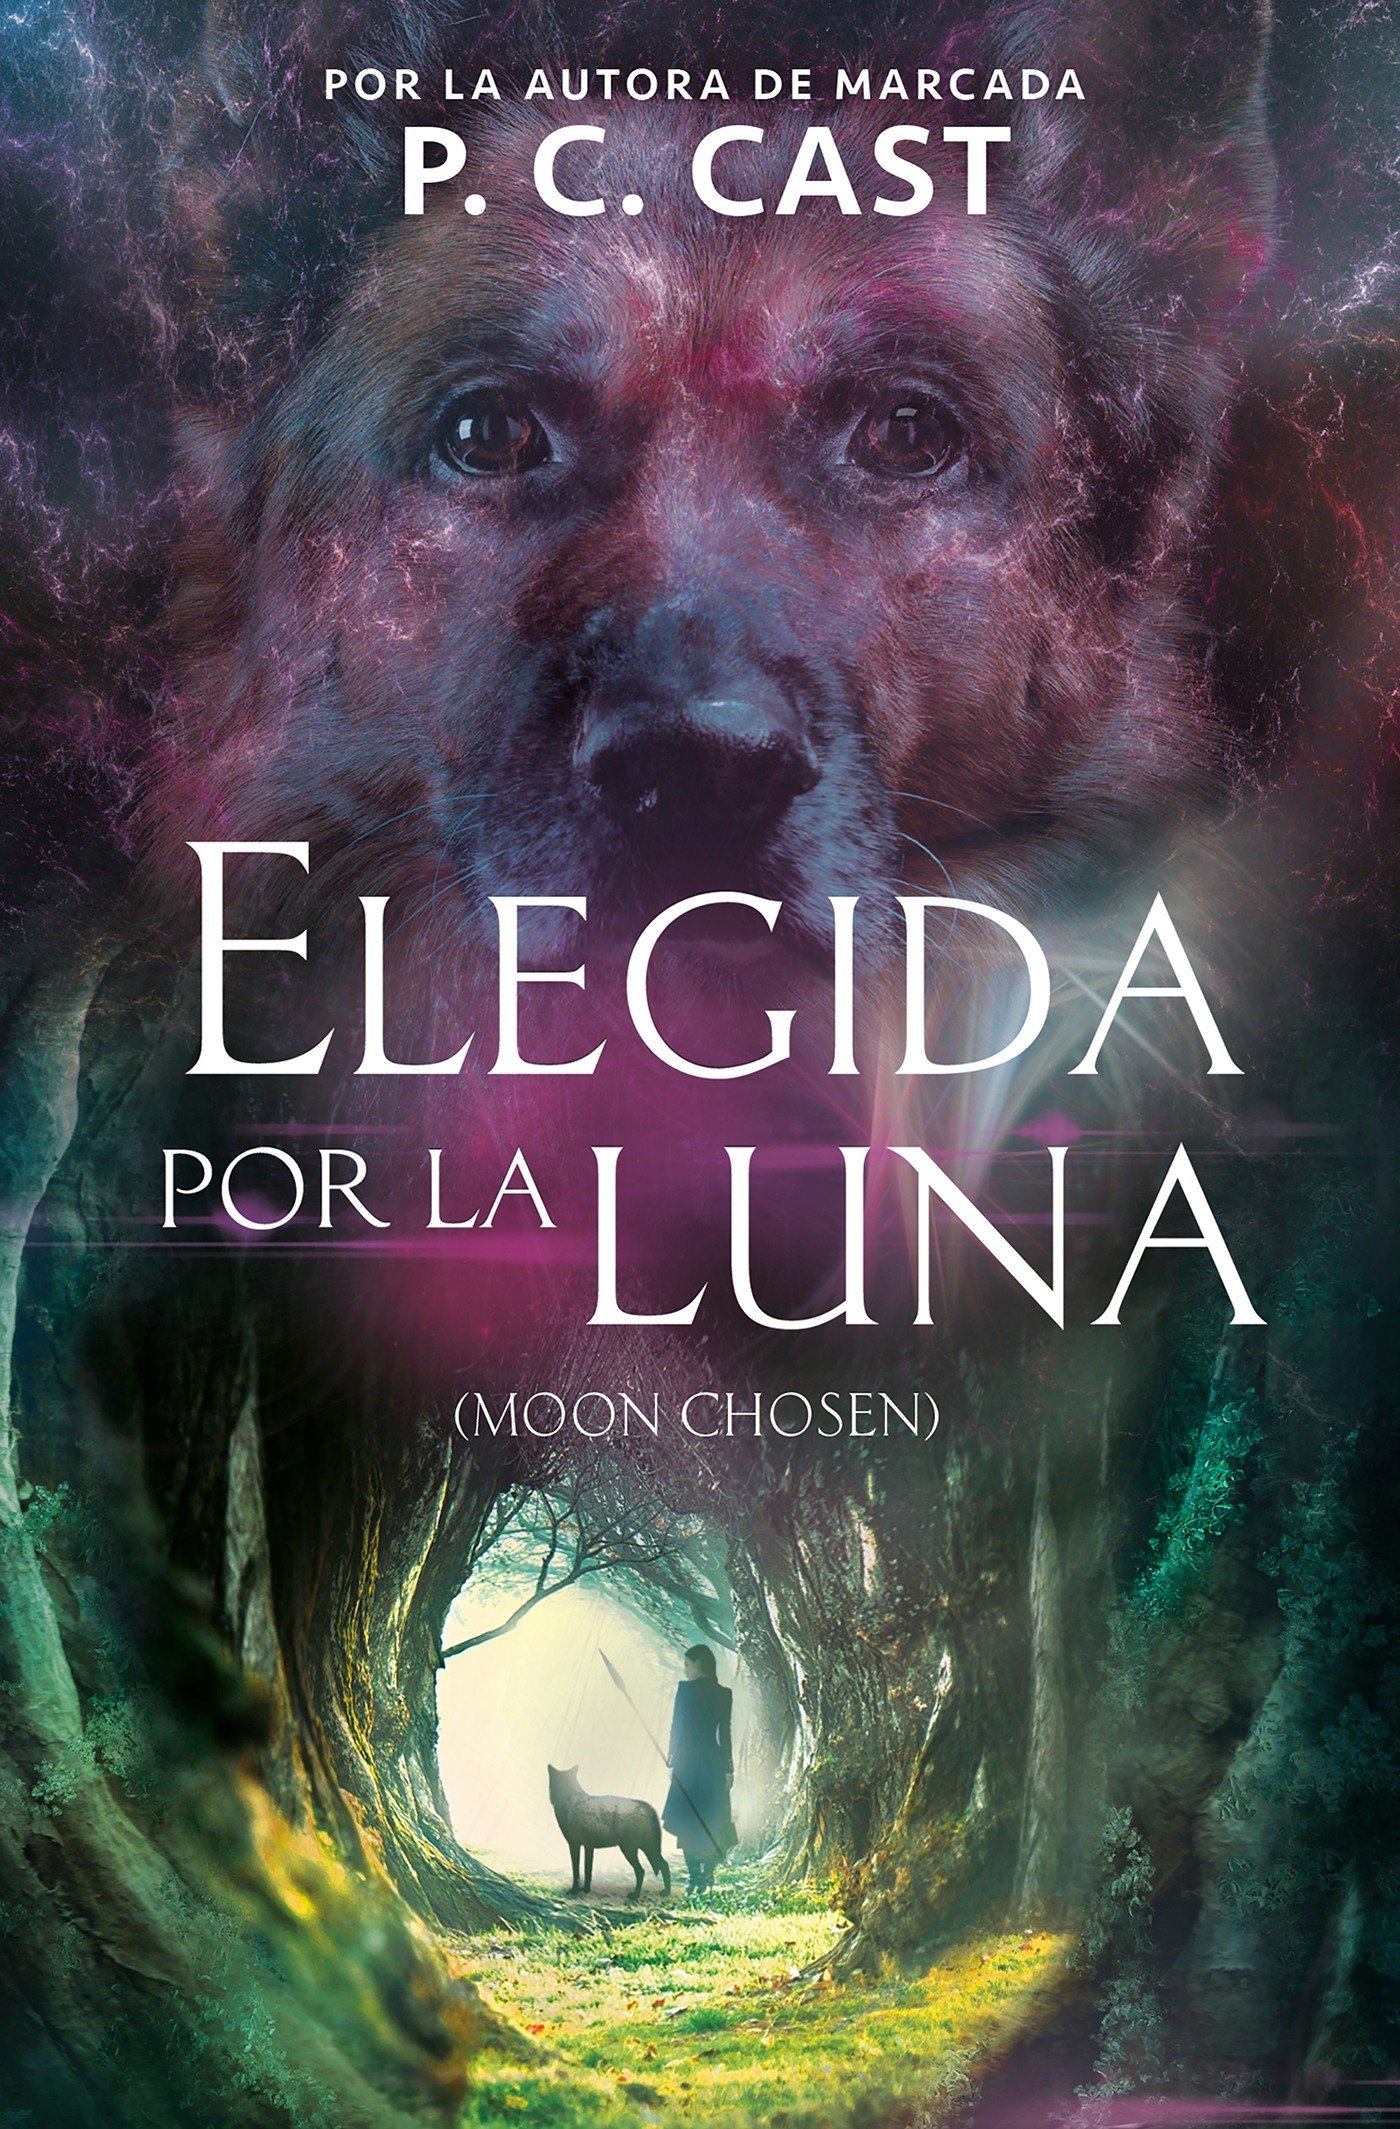 Amazon.com: Elegida por la luna / Moon Chosen (Tales of a New World, Book 1) (Spanish Edition) (9781945540714): P.C. Cast: Books